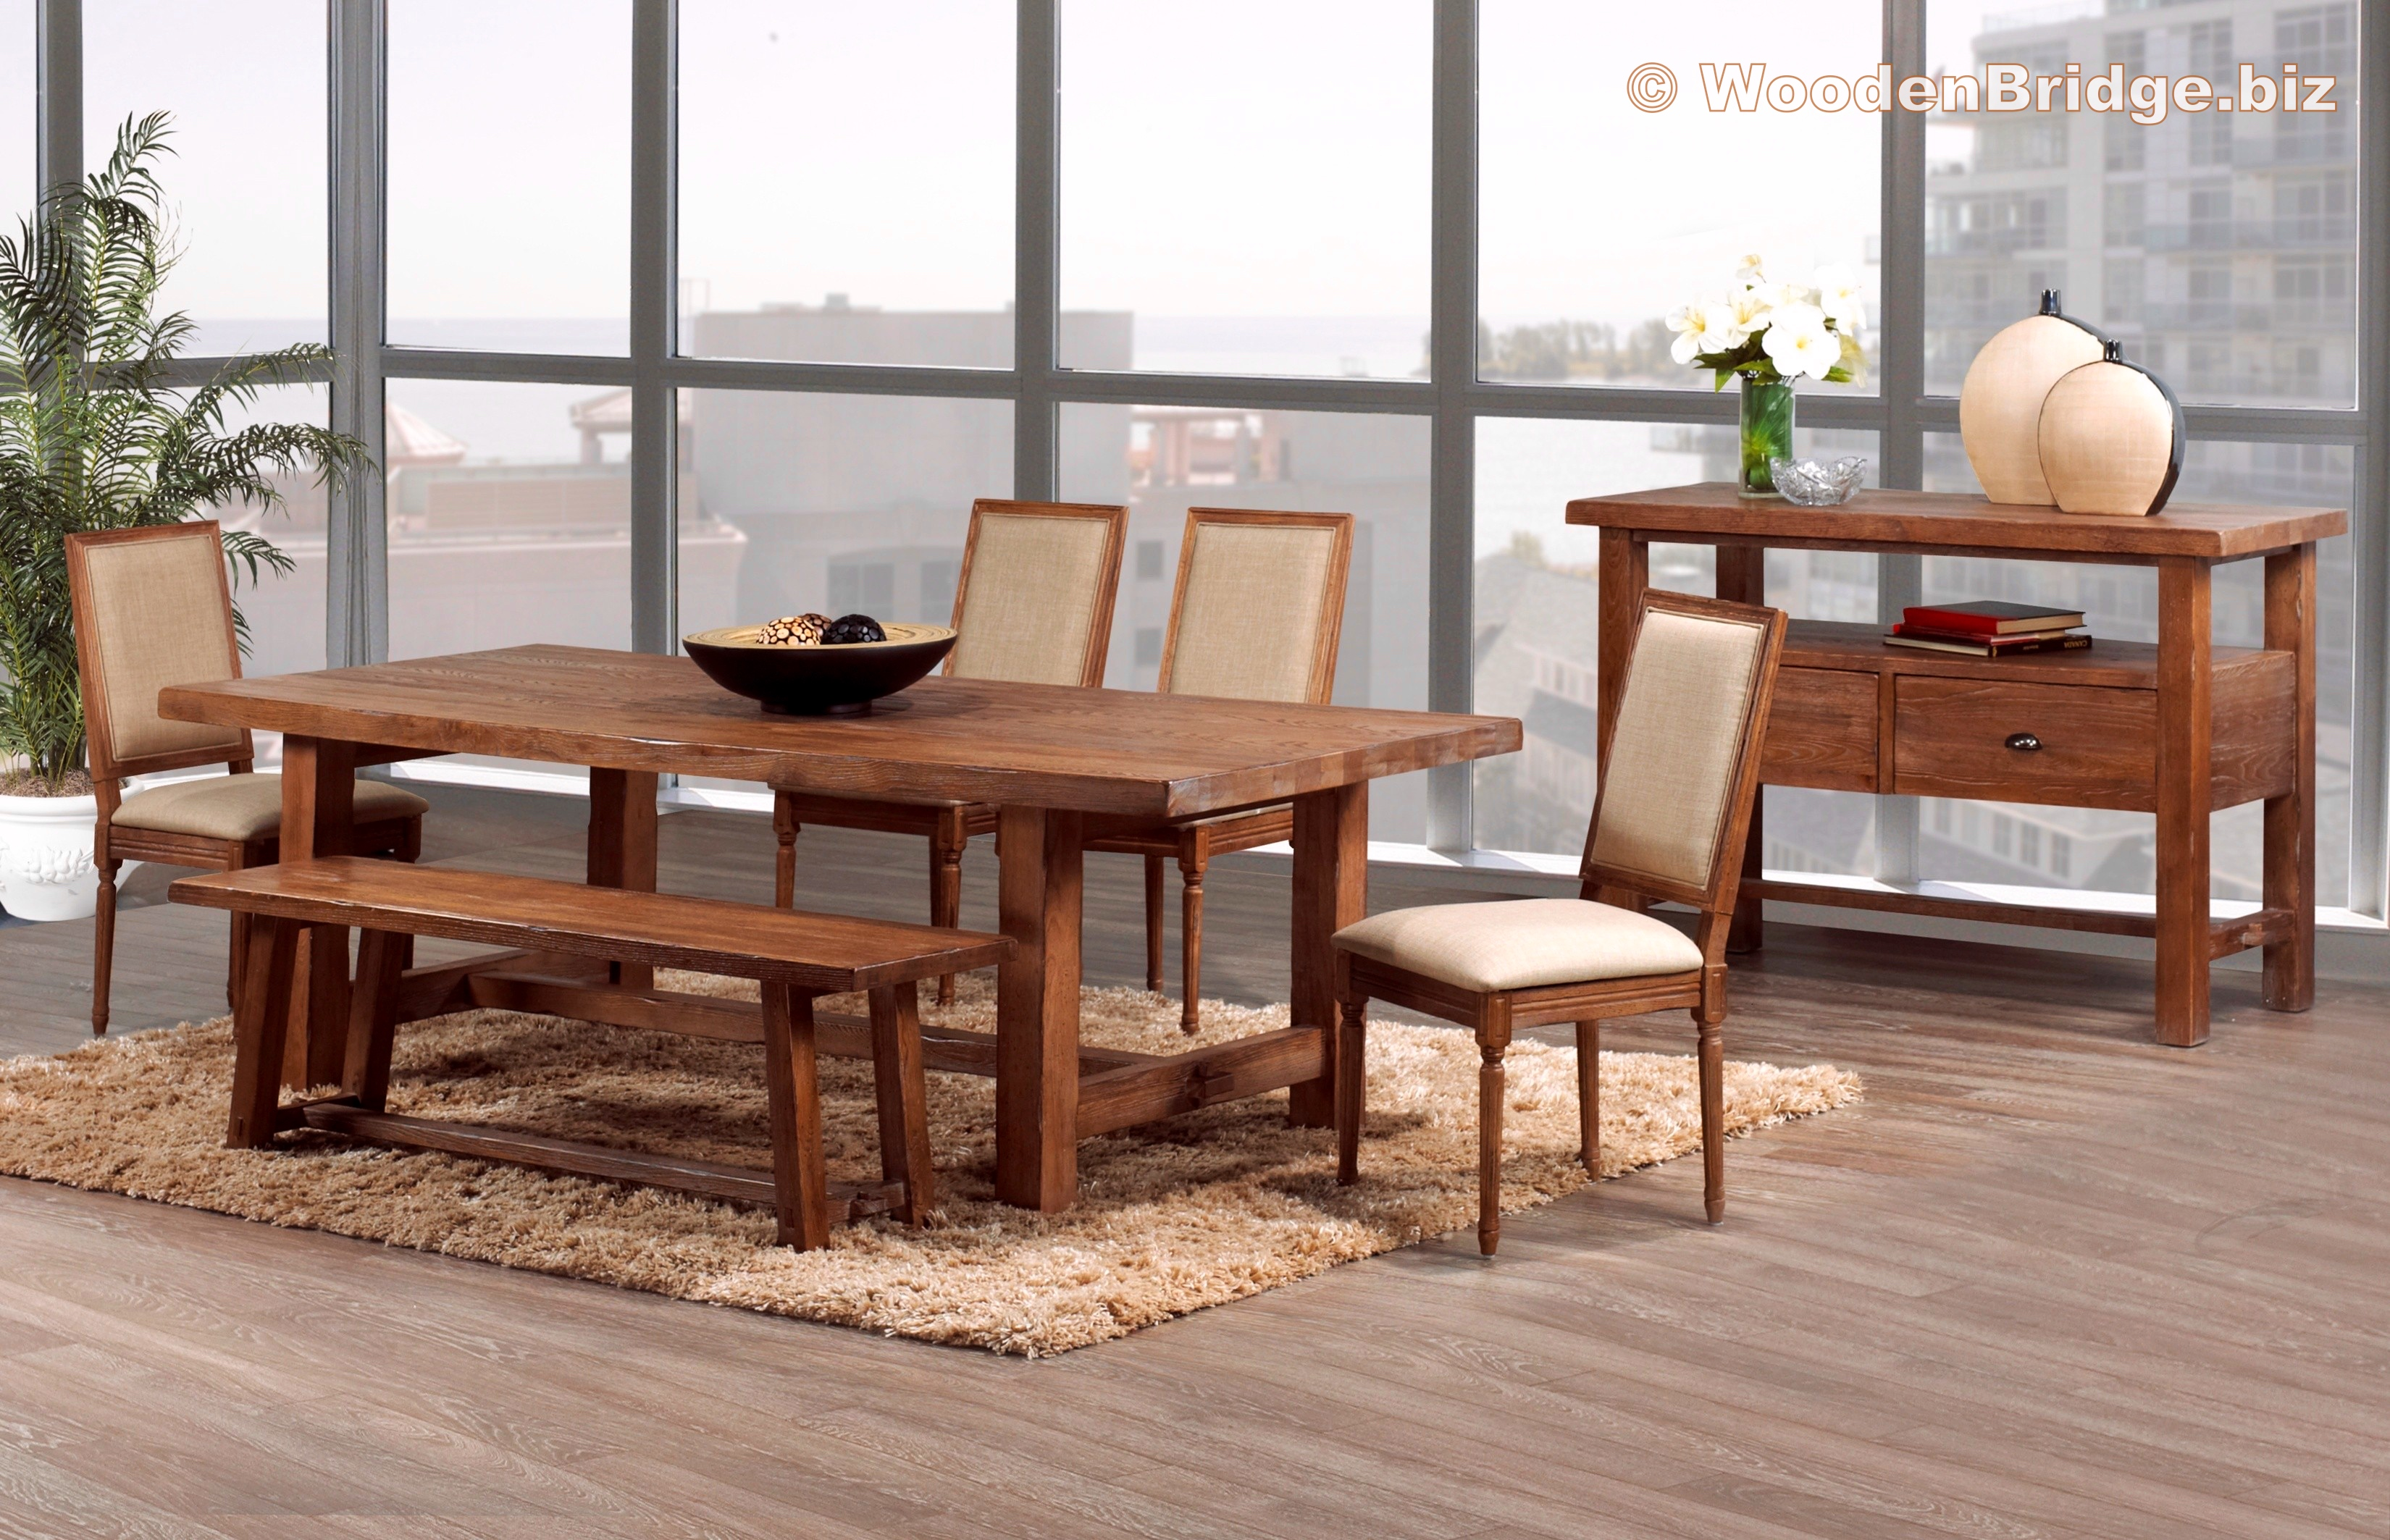 Reclaimed Wood Dining Table Ideas – 3300 x 2127